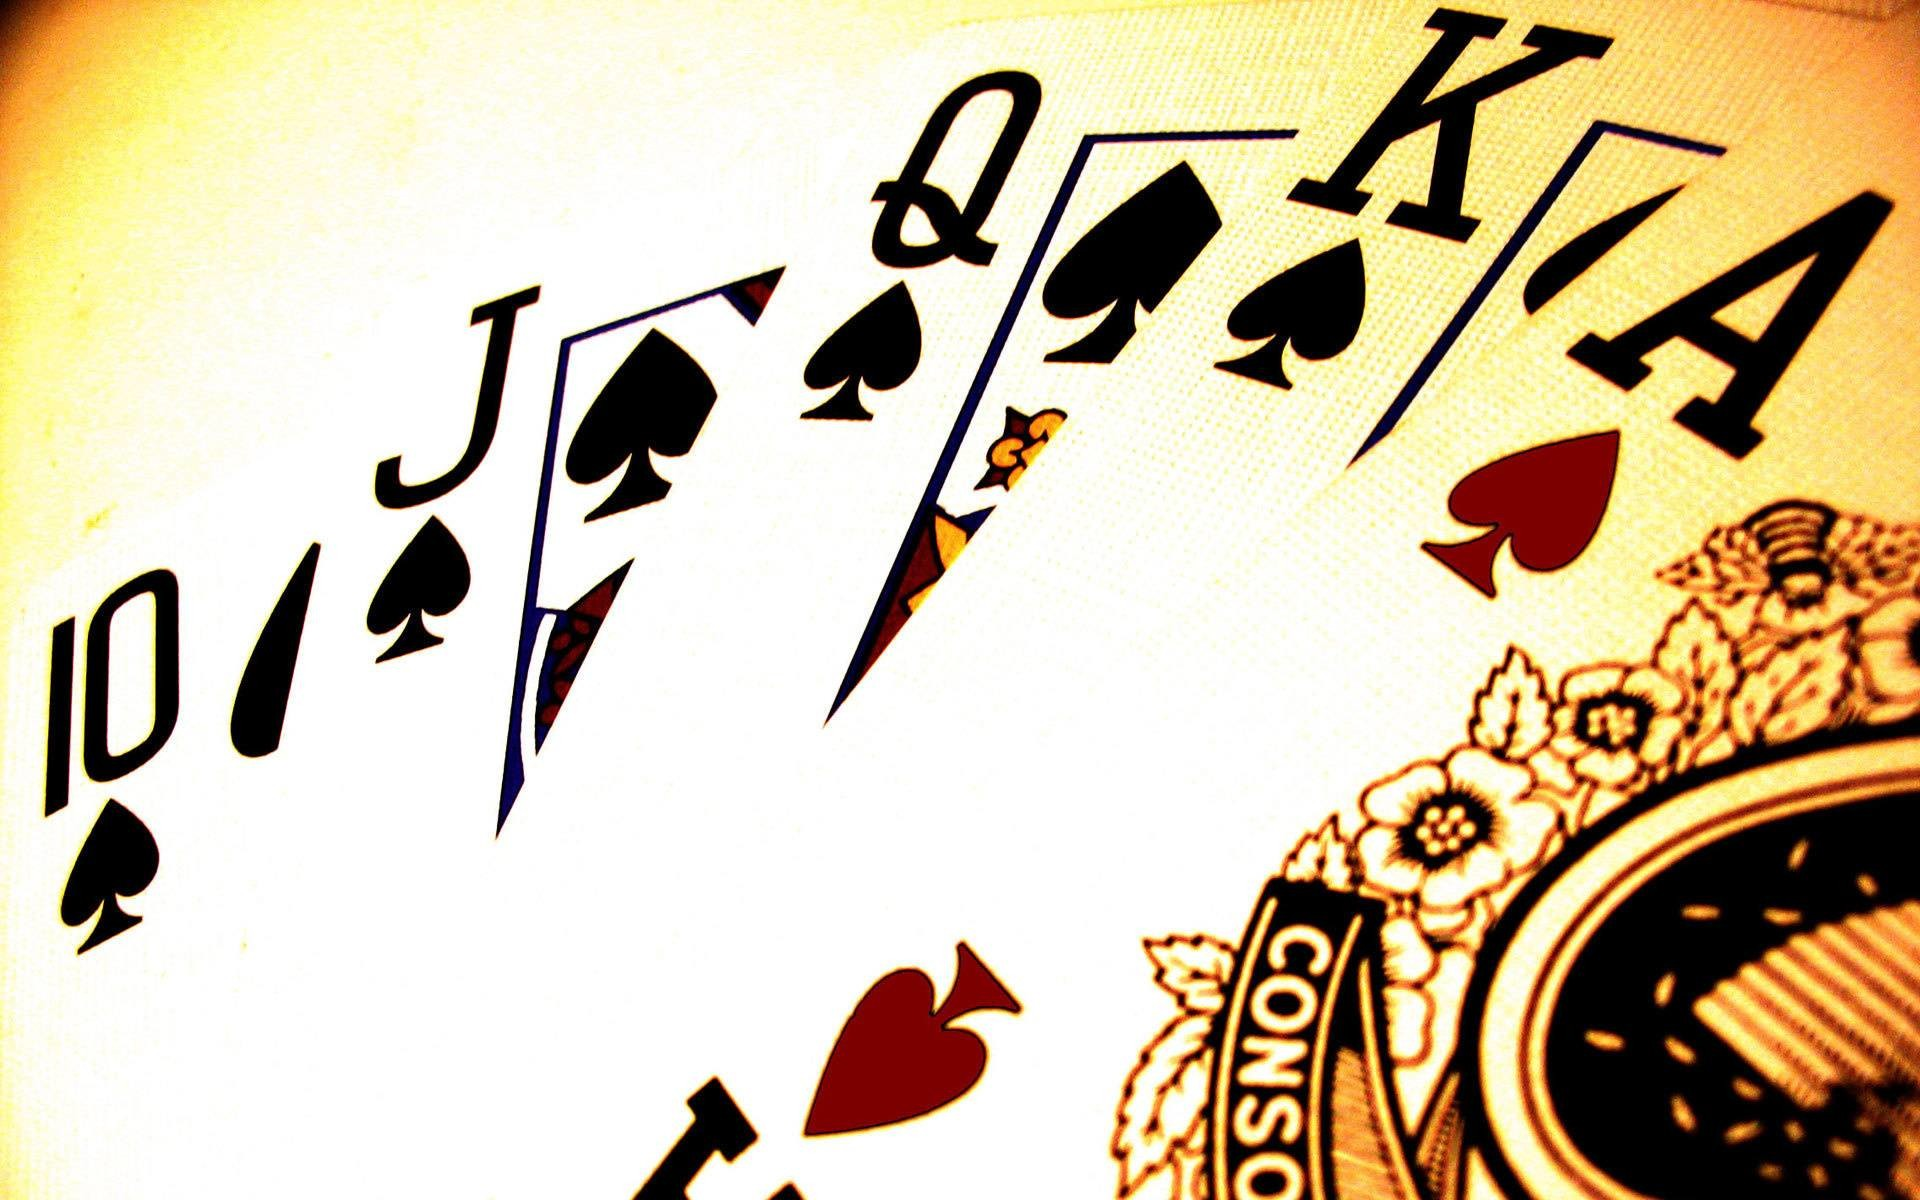 Res: 1920x1200, Poker (May 6, 2019) - Wallpapers and Pictures